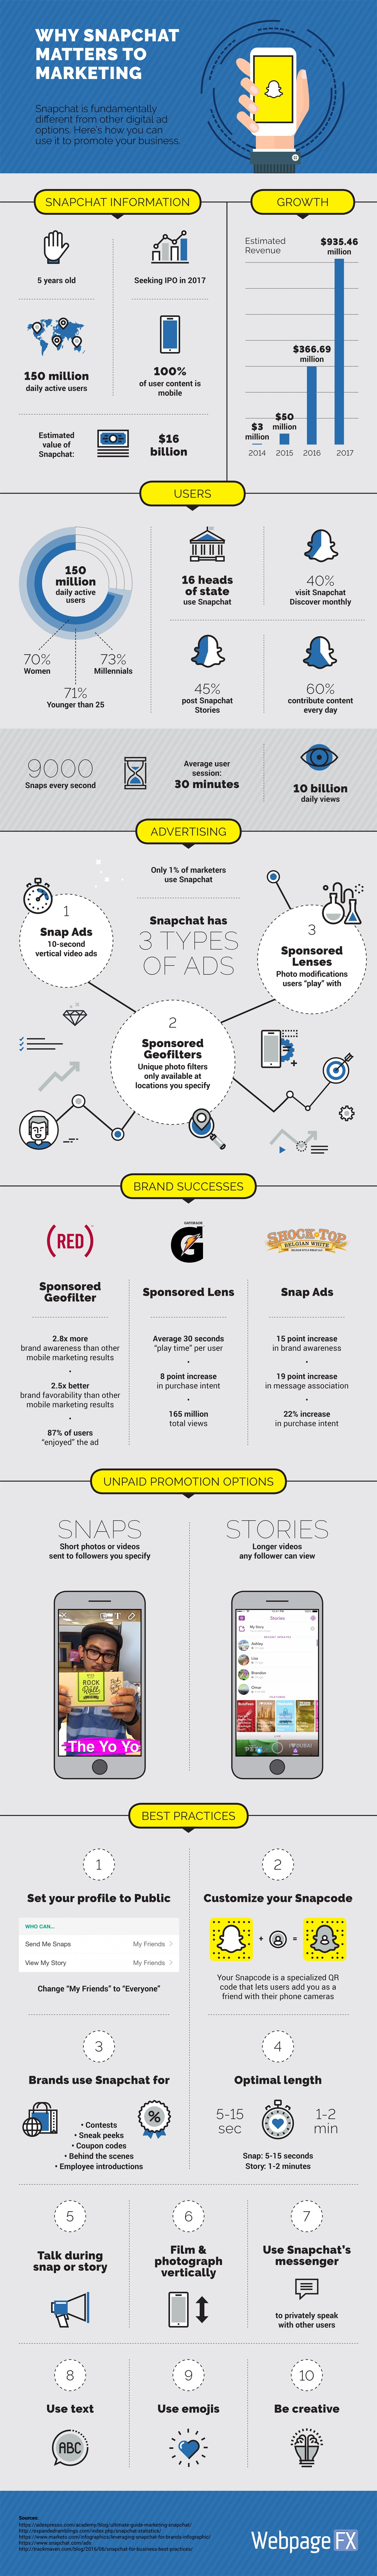 why-snapchat-matters-to-marketing-final.png